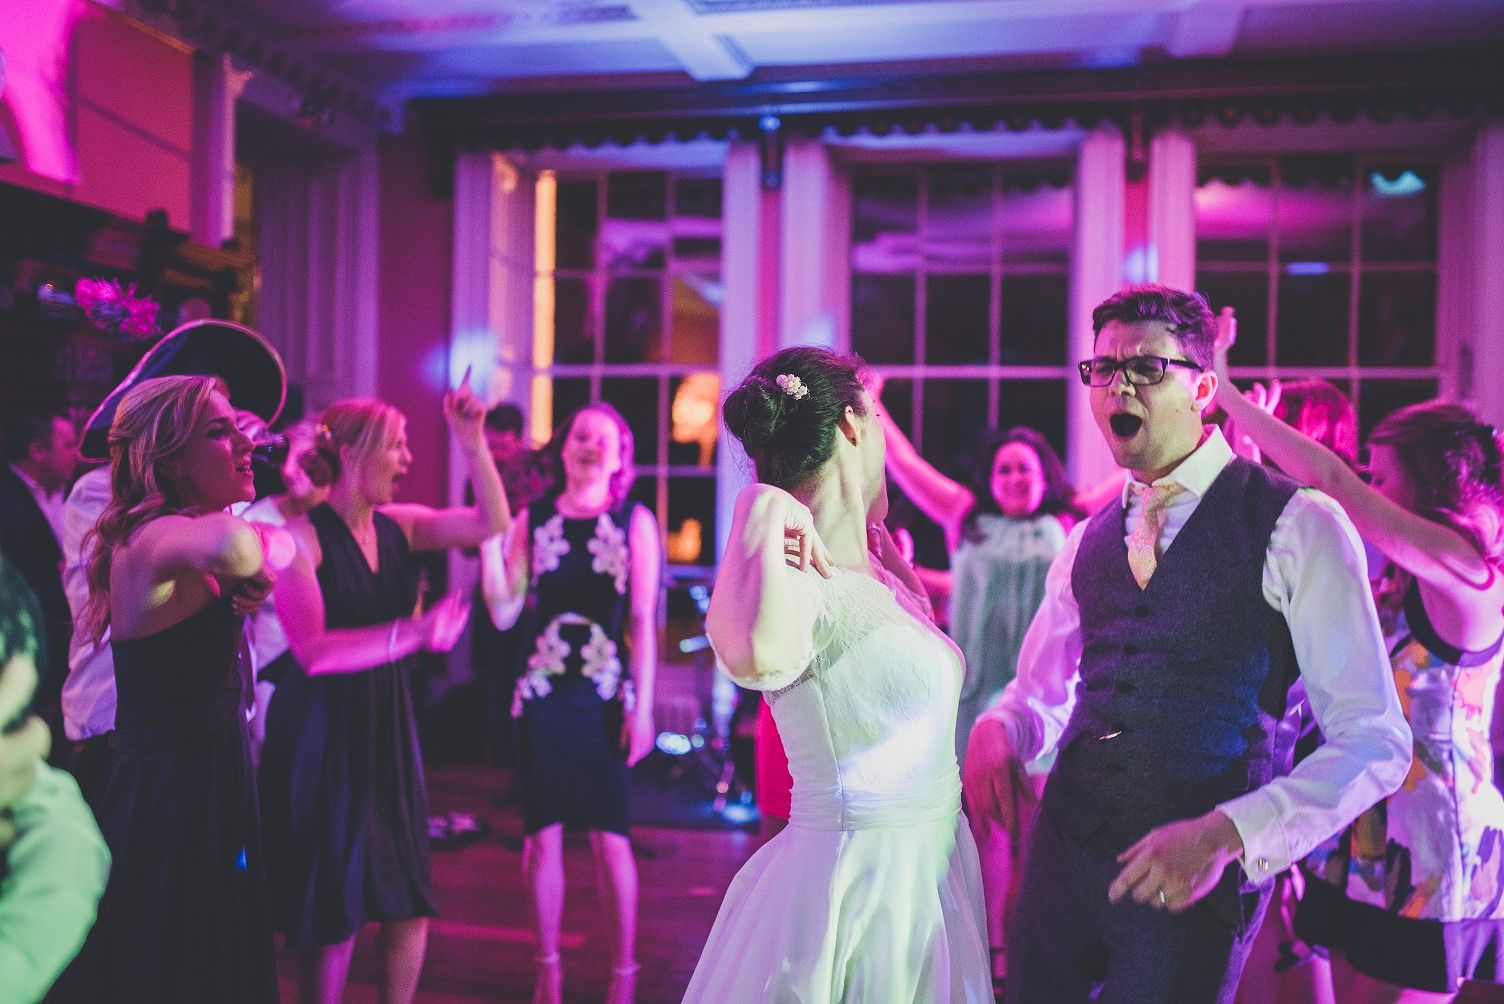 Unity Wedding DJs - Wedding DJs in Dorset - Love That Wedding!